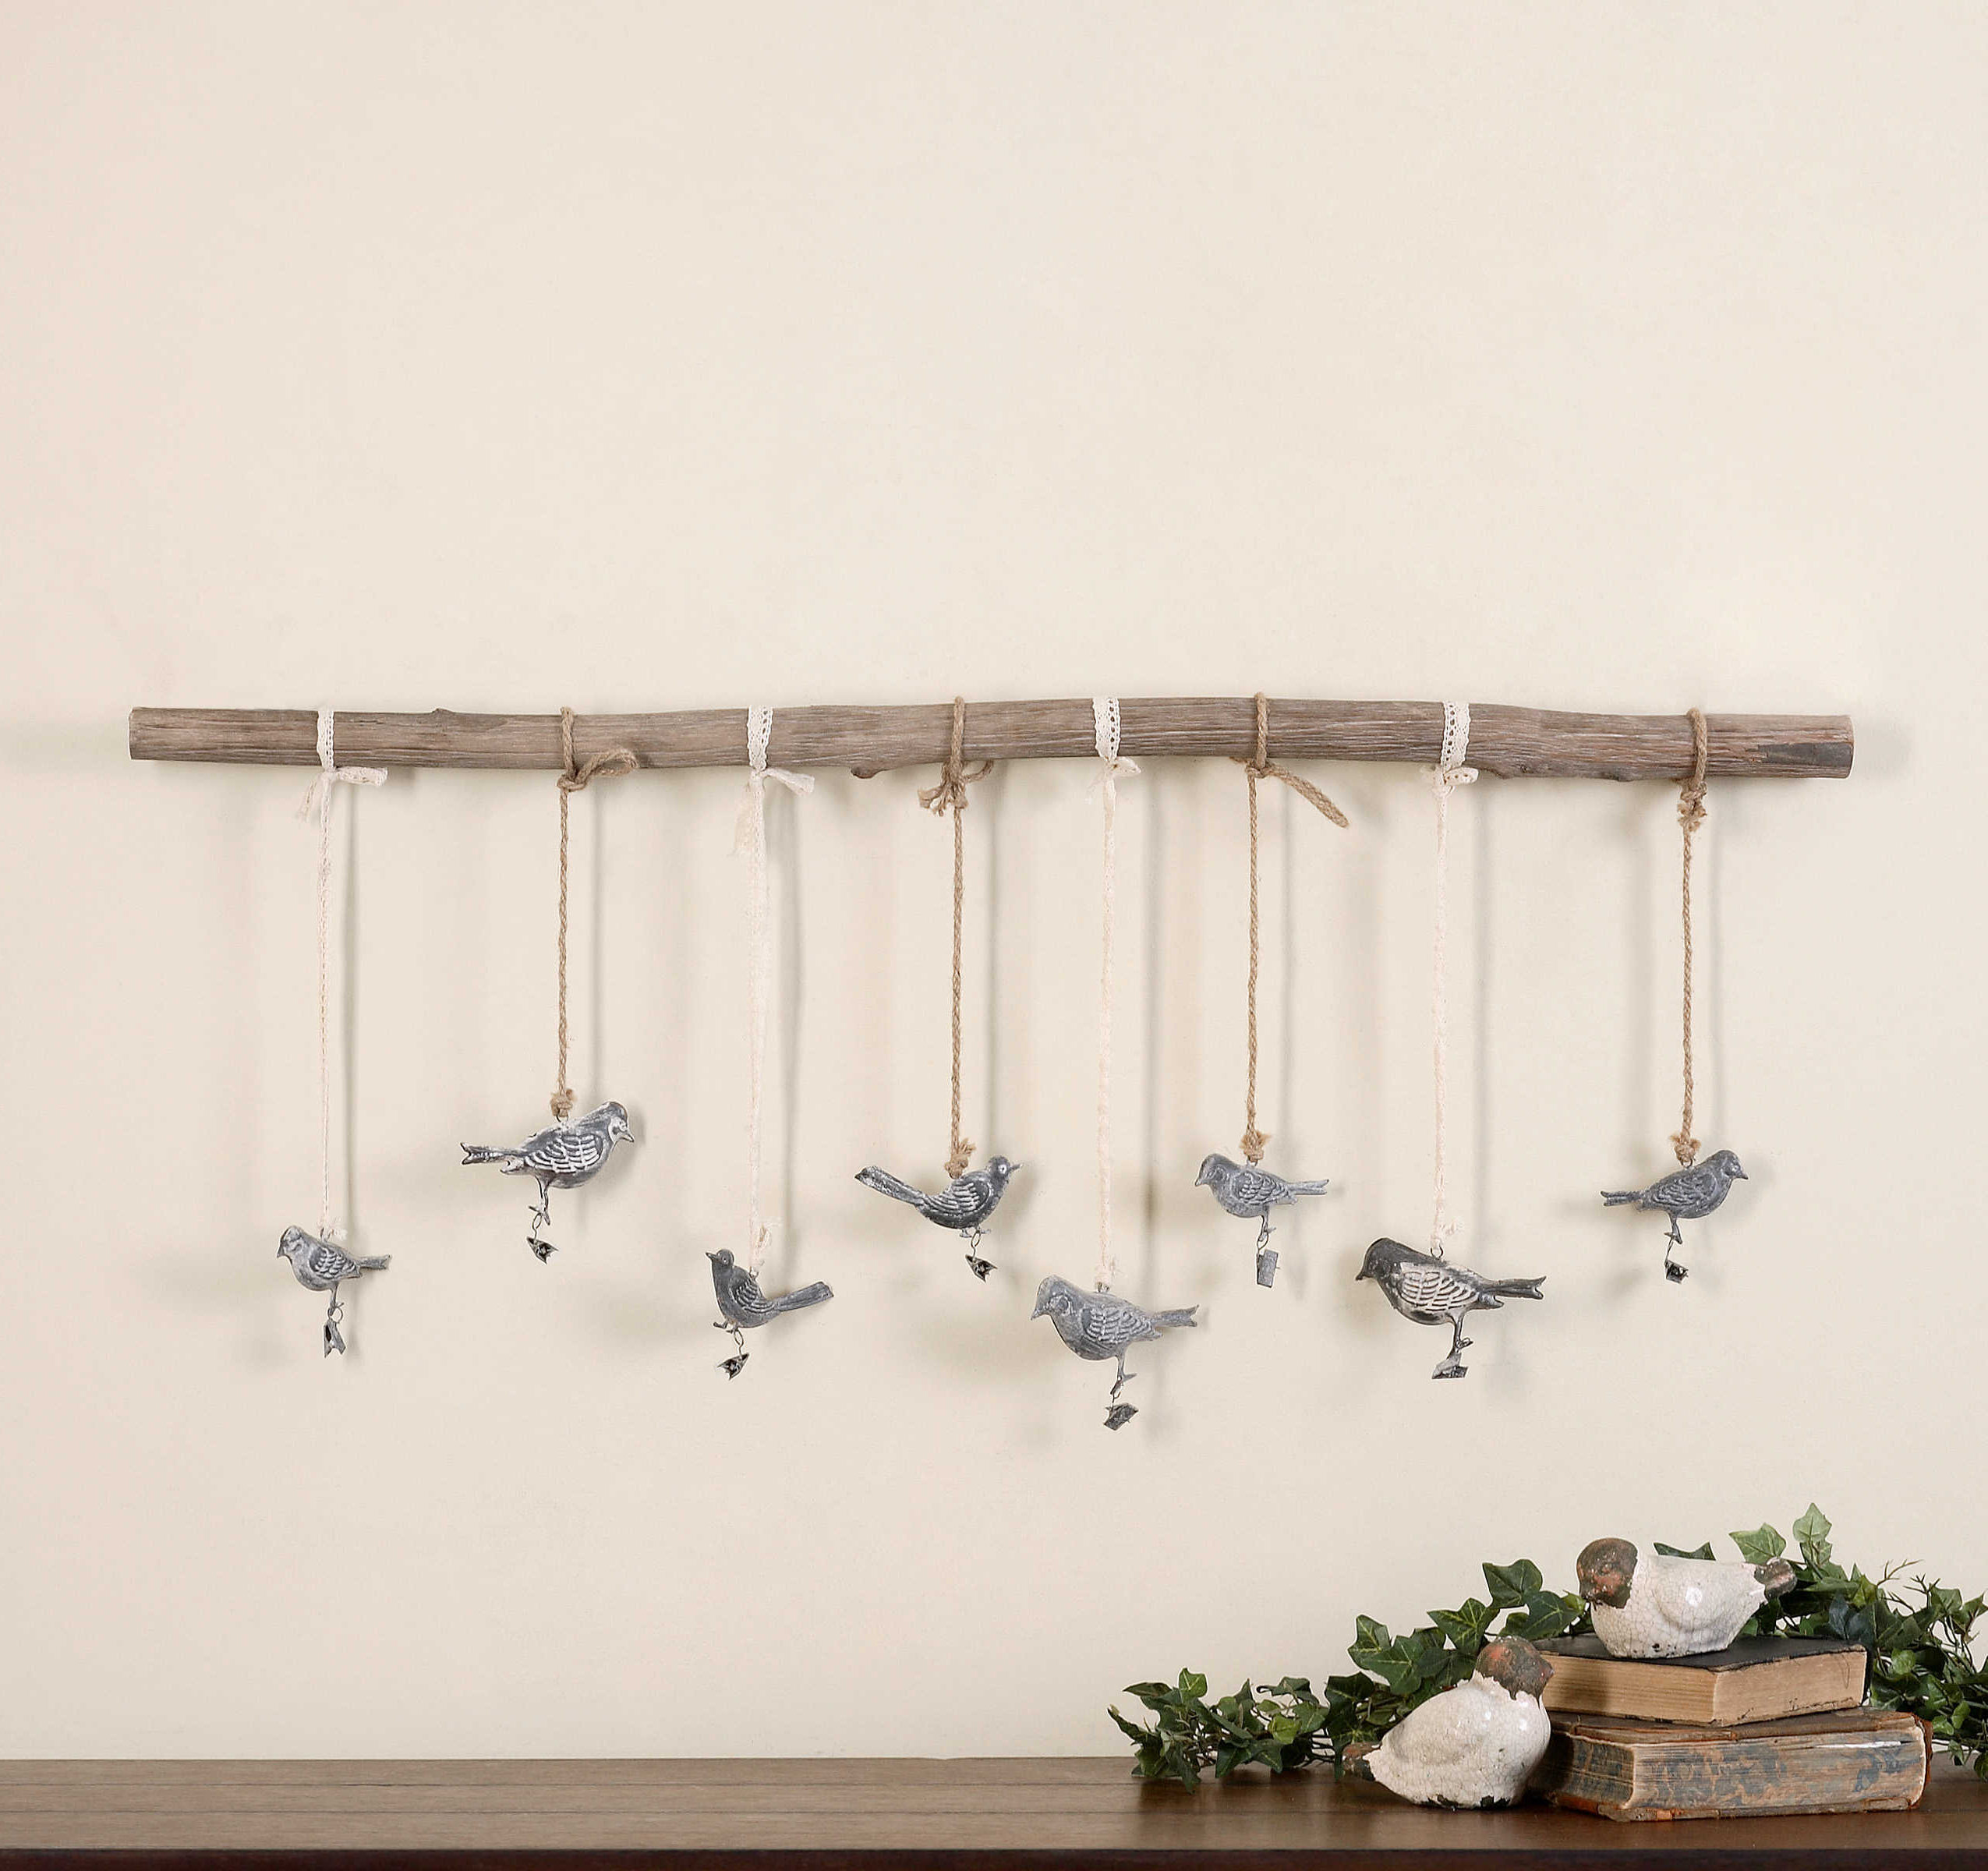 Birds On A Branch Wall Decor Intended For Famous Uttermost Birds On A Branch Wall Art (Gallery 6 of 20)